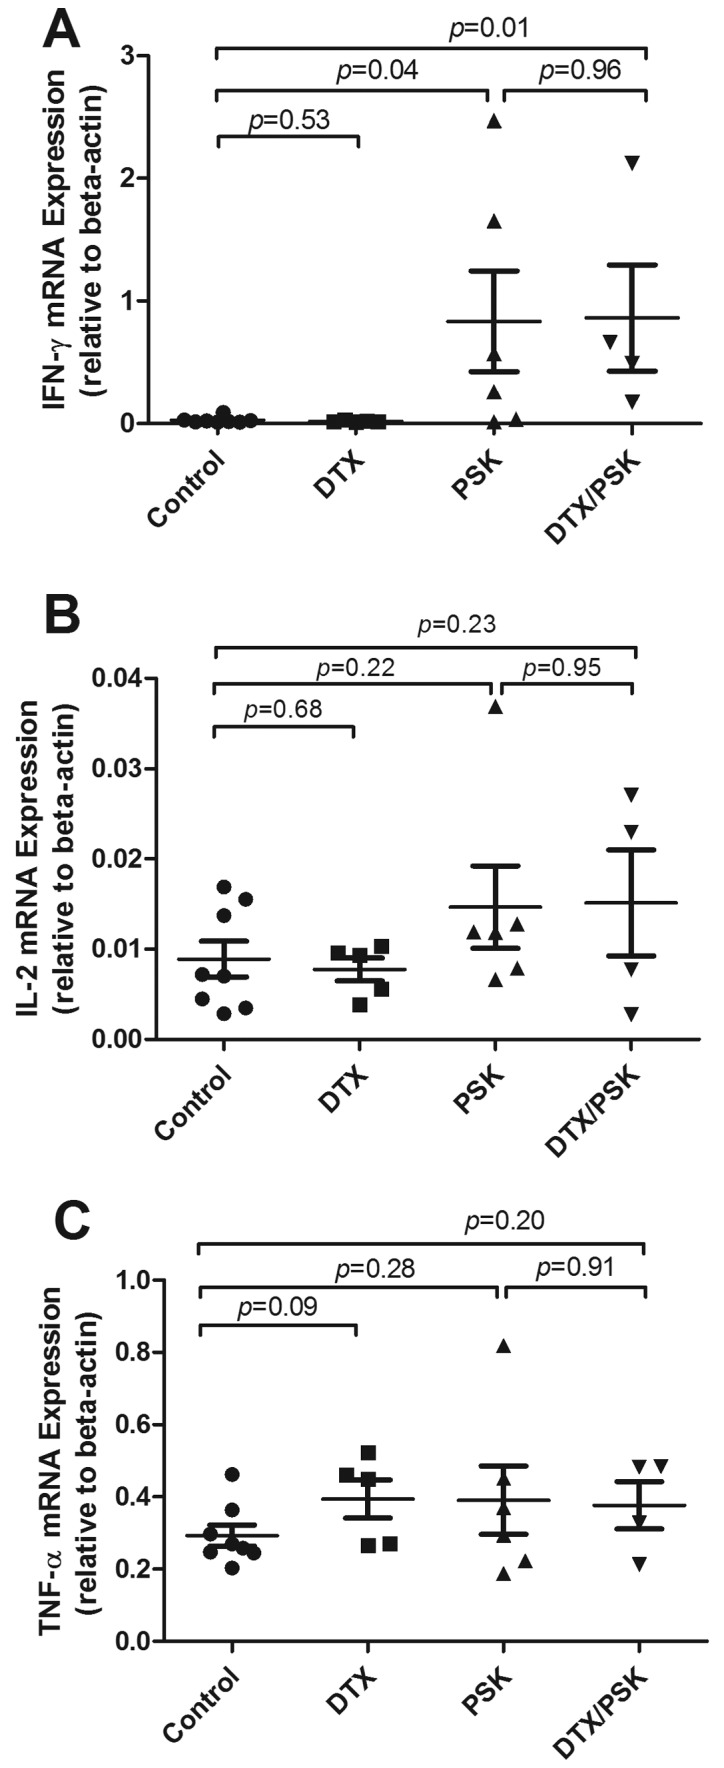 Effects of PSK and docetaxel treatments on mRNA expression of markers of antitumor immune response. Groups of mice (n=8 control; n=5 docetaxel; n= 6 PSK; n=4 PSK + docetaxel) bearing established TRAMP-C2 tumors (12 days) were treated with either oral saline, subtherapeutic dose of docetaxel (5 mg/kg twice weekly), oral gavage of PSK (300 mg/kg), or a combination of docetaxel and PSK. <t>RNA</t> was extracted from isolated tumors and real-time RT-PCR performed using primers and probes for several different cytokines and antitumor immune response markers. Shown are the effects of the different treatment groups on mRNA expression of <t>IFN-γ</t> (A), IL-2 (B), and TNF-α (C). The values shown are relative cytokine mRNA per 1,000 copies of β-actin. Mice treated with PSK, either alone (p=0.04) or with docetaxel (p=0.01) significantly induced IFN-γ mRNA expression in TRAMP-C2 tumors compared to saline control.